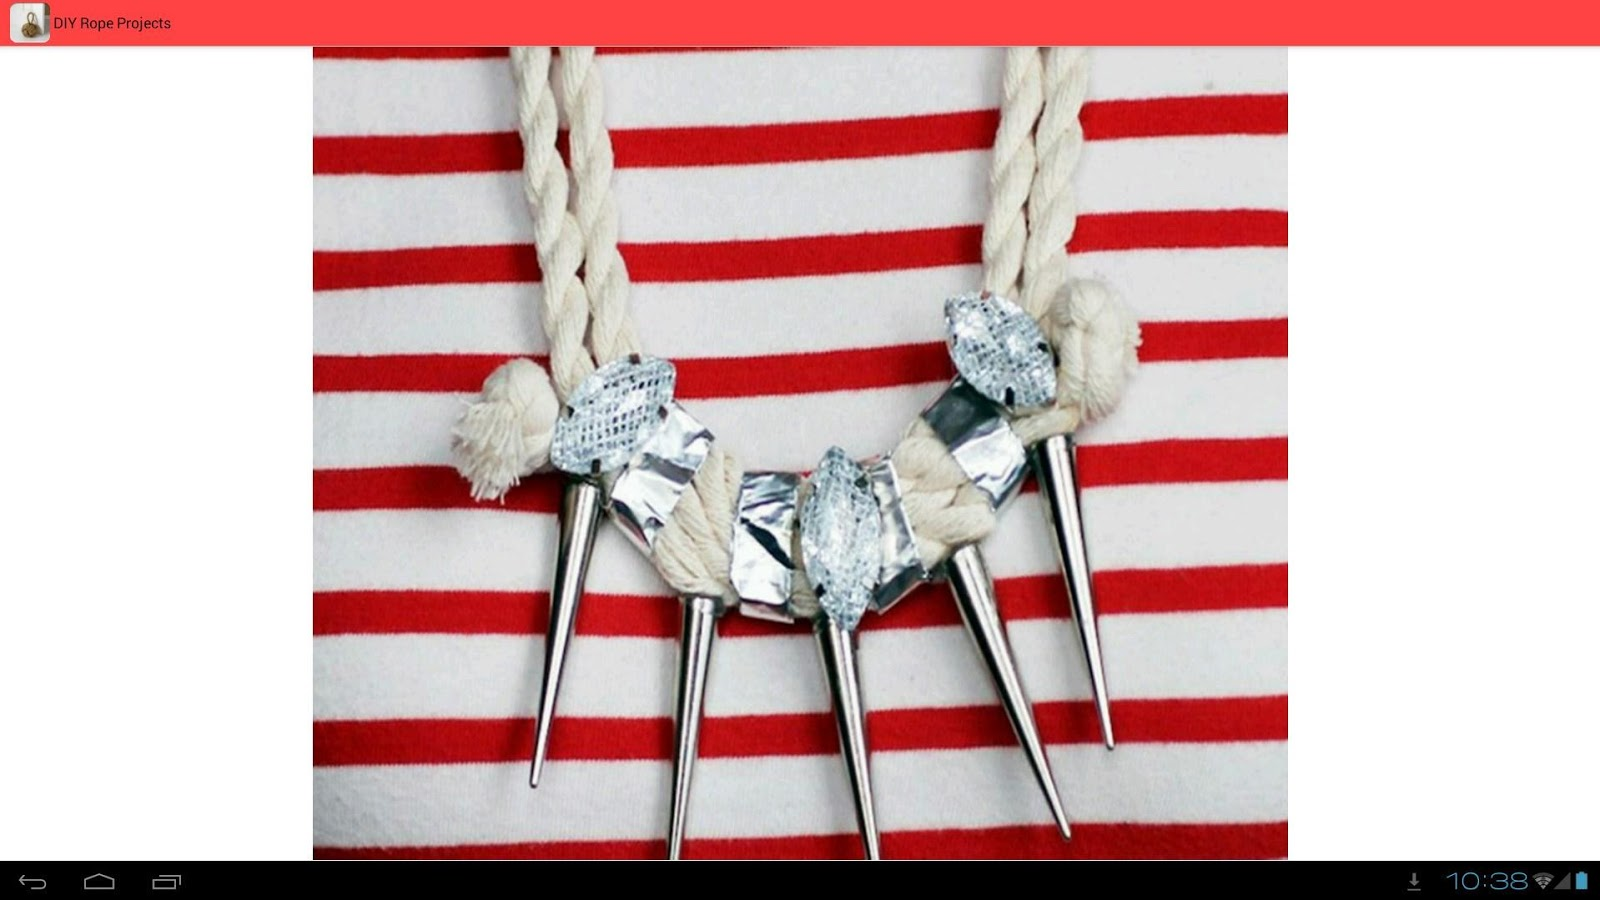 Diy rope projects android apps on google play for Rope projects